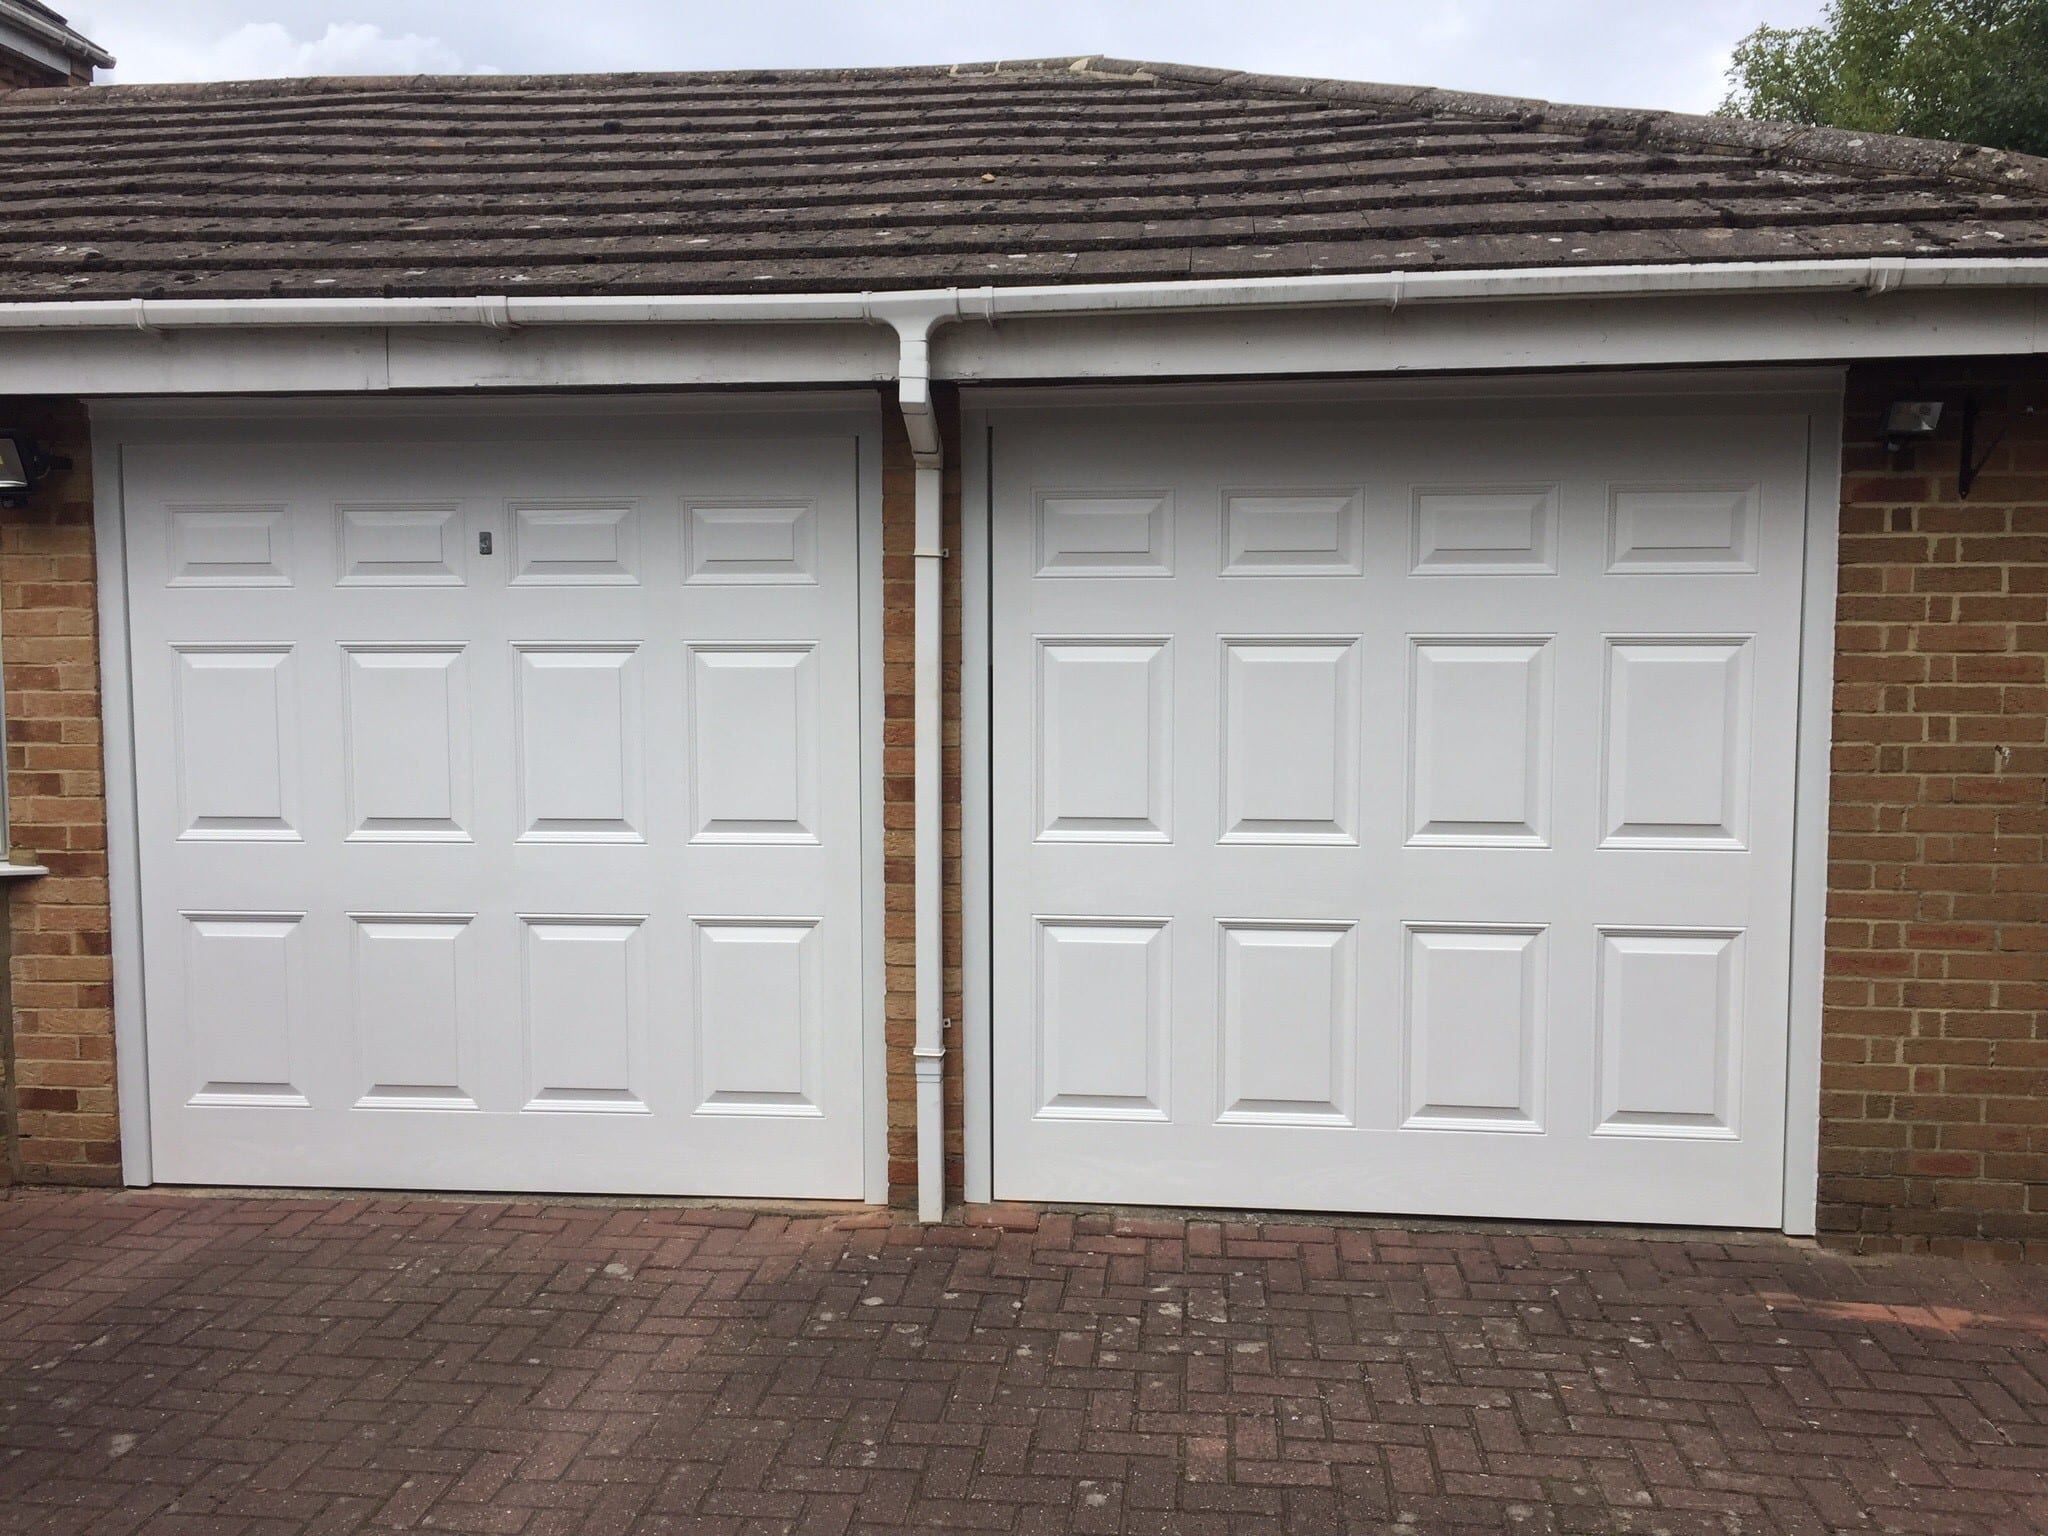 Seceuroglide insulated sectional garage door georgian cassette - Garador Georgian Retractable Up And Over Garage Doors